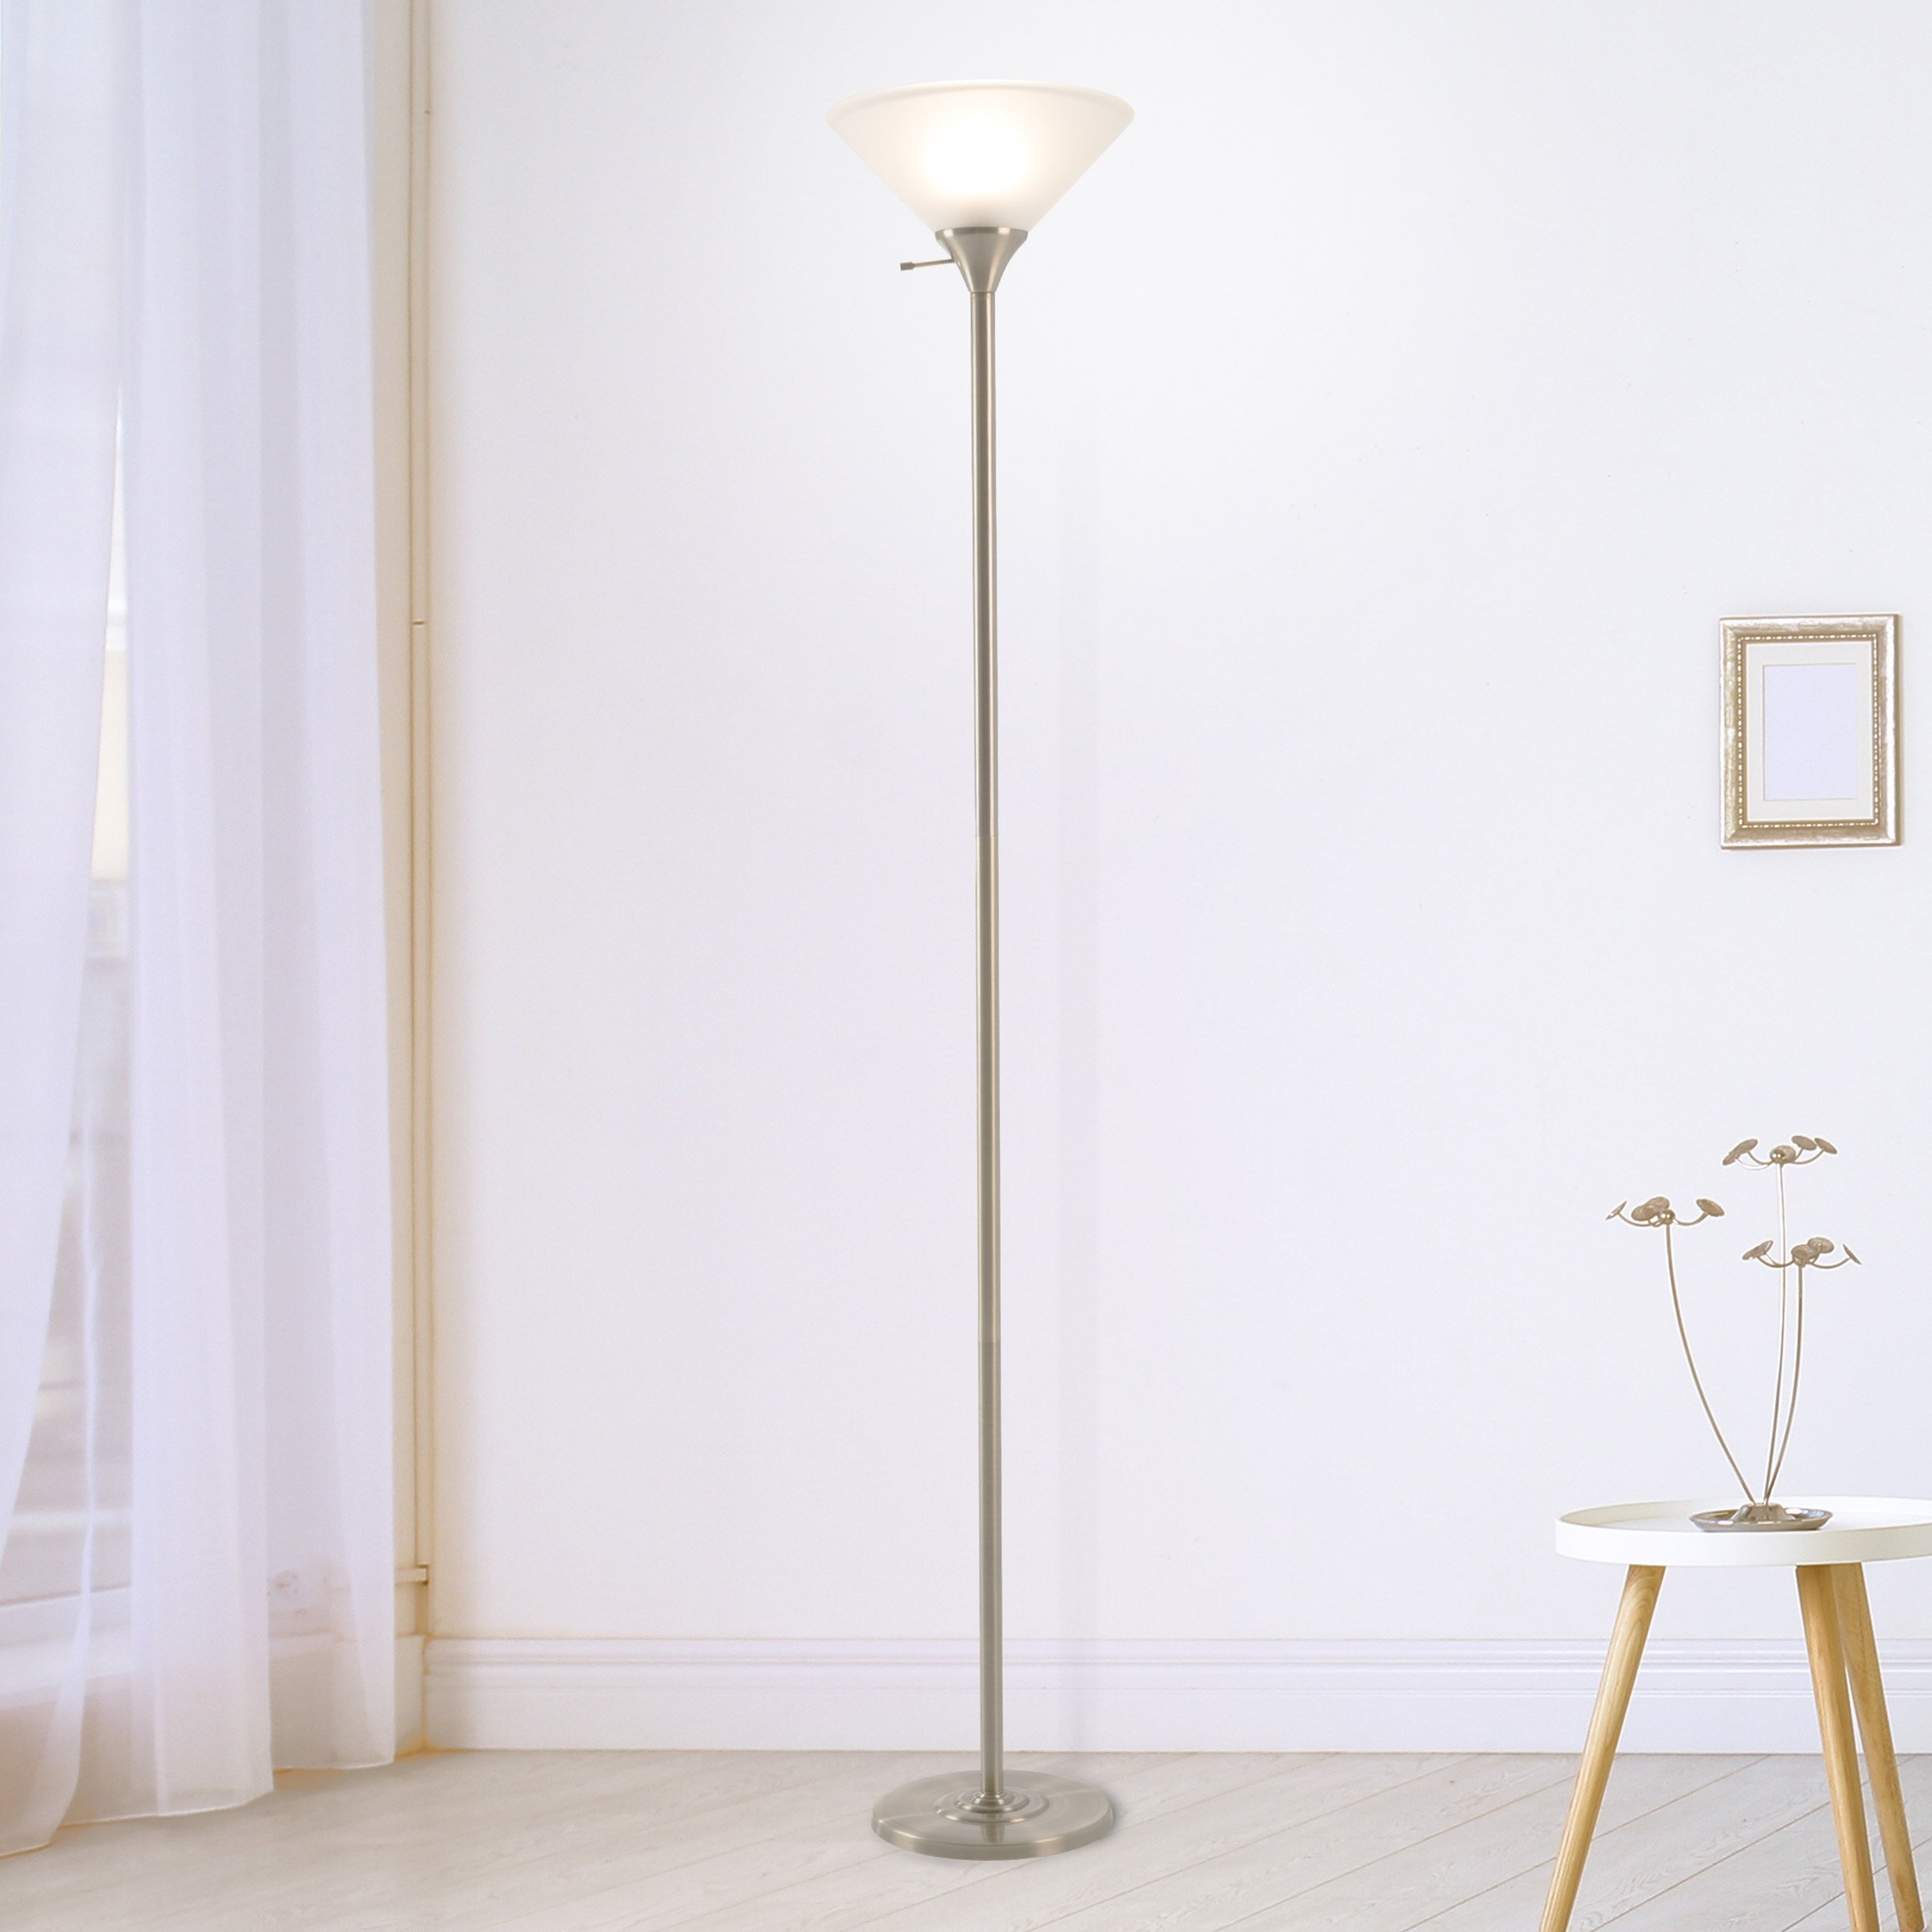 Lavish Home 72-Torch-2 2 Floor Lamp-Standing Light with Sturdy Metal Base, Light Bronze